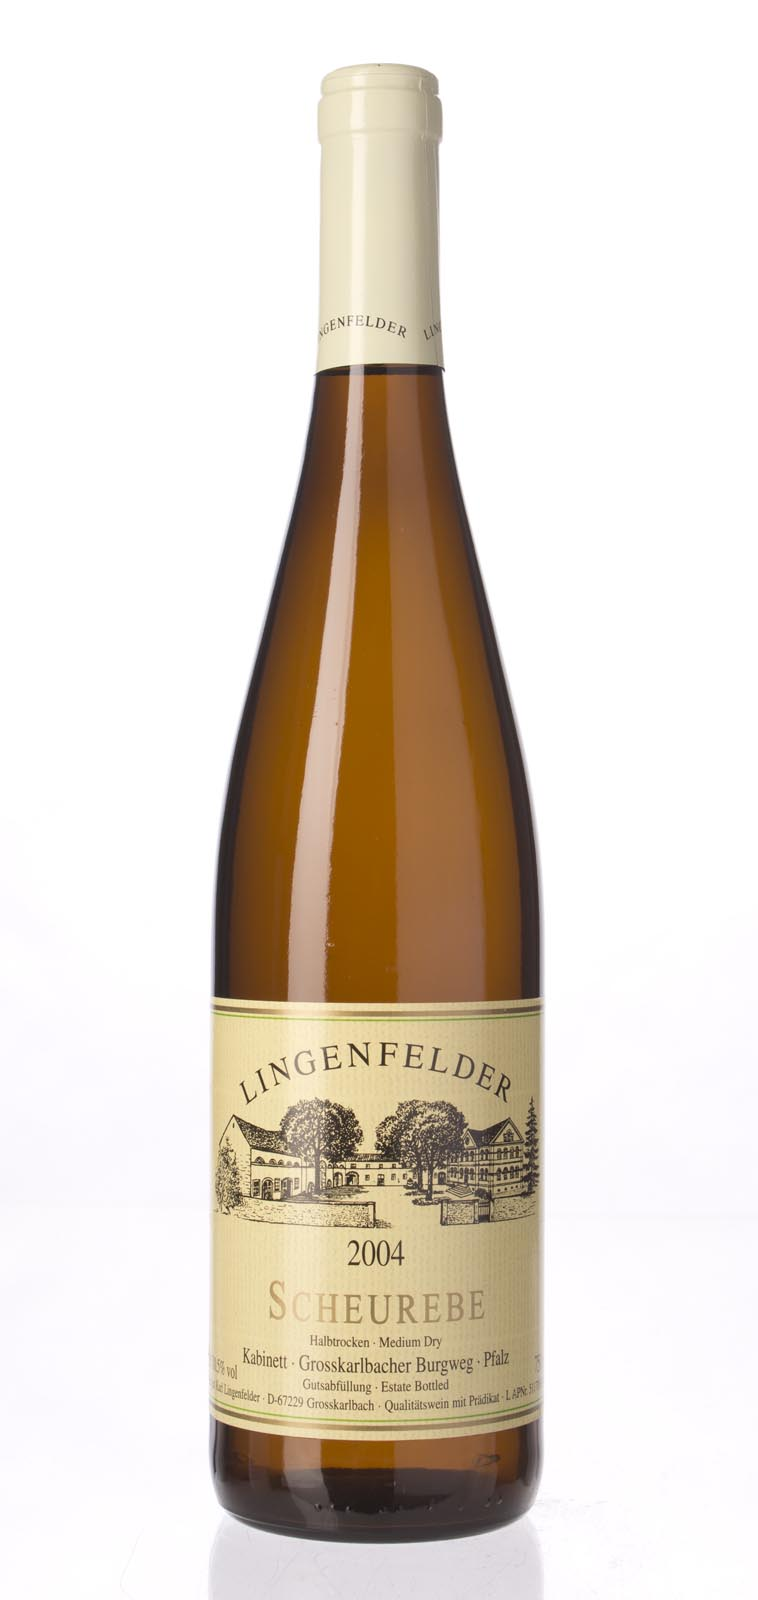 Lingenfelder Grosskarlbacher Burgweg Scheurebe Kabinett 2004, 750ml () from The BPW - Merchants of rare and fine wines.